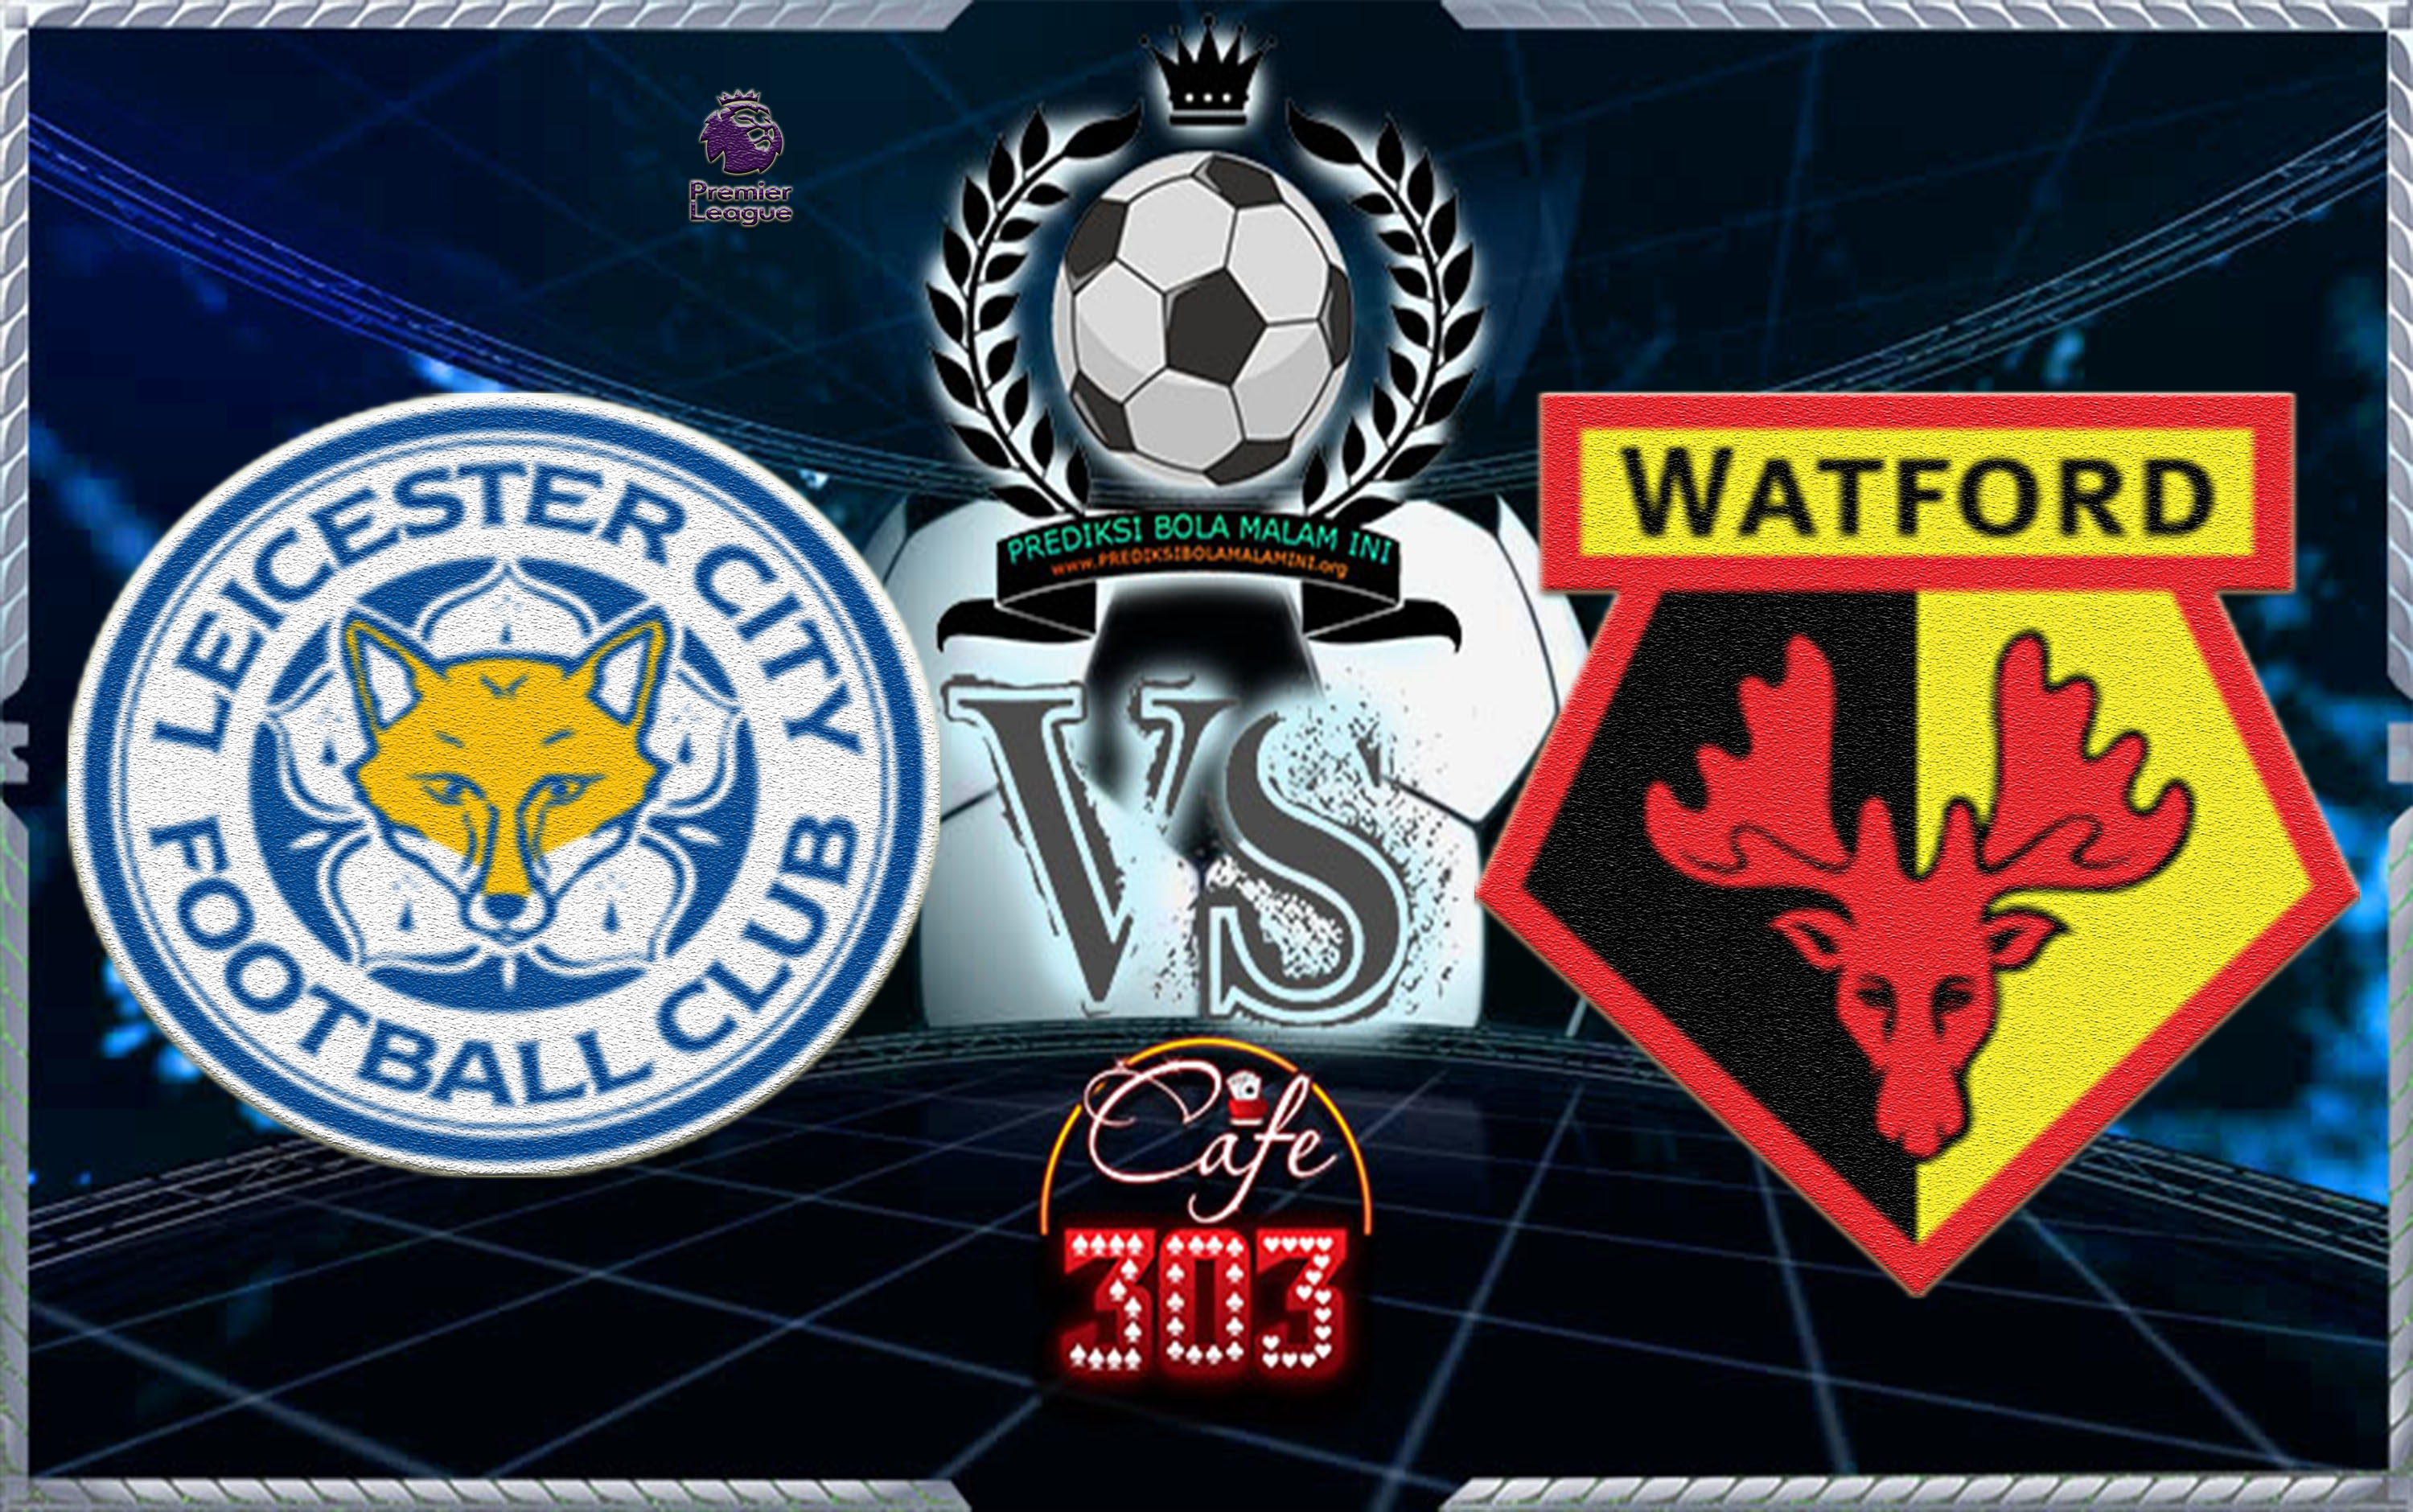 Kota Leicester Vs Watford &quot;width =&quot; 640 &quot;height =&quot; 401 &quot;/&gt; </p> <p><span style=